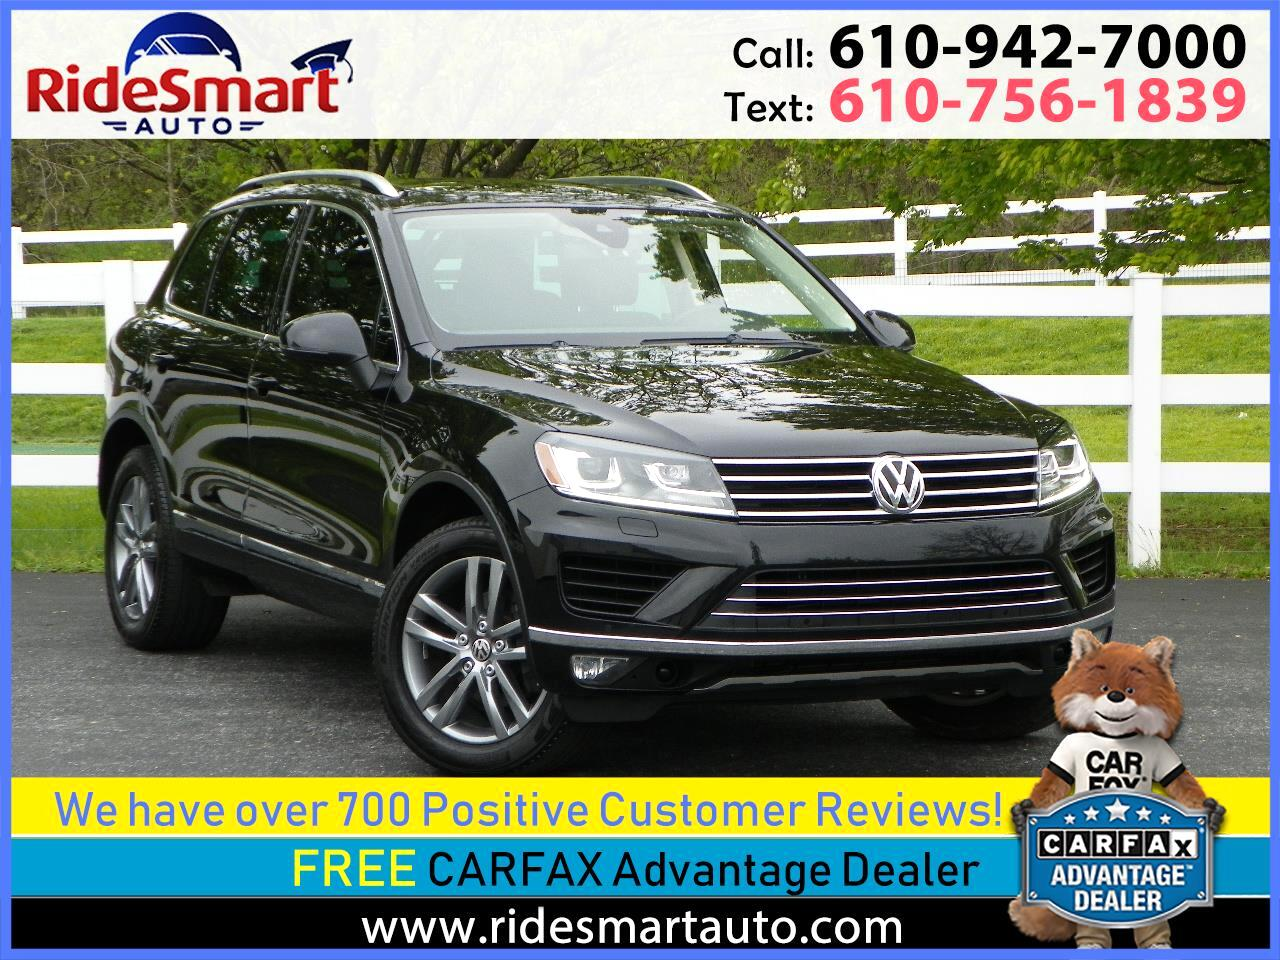 2016 Volkswagen Touareg VR6 Luxury AWD Nav-Panoramic Sunroof